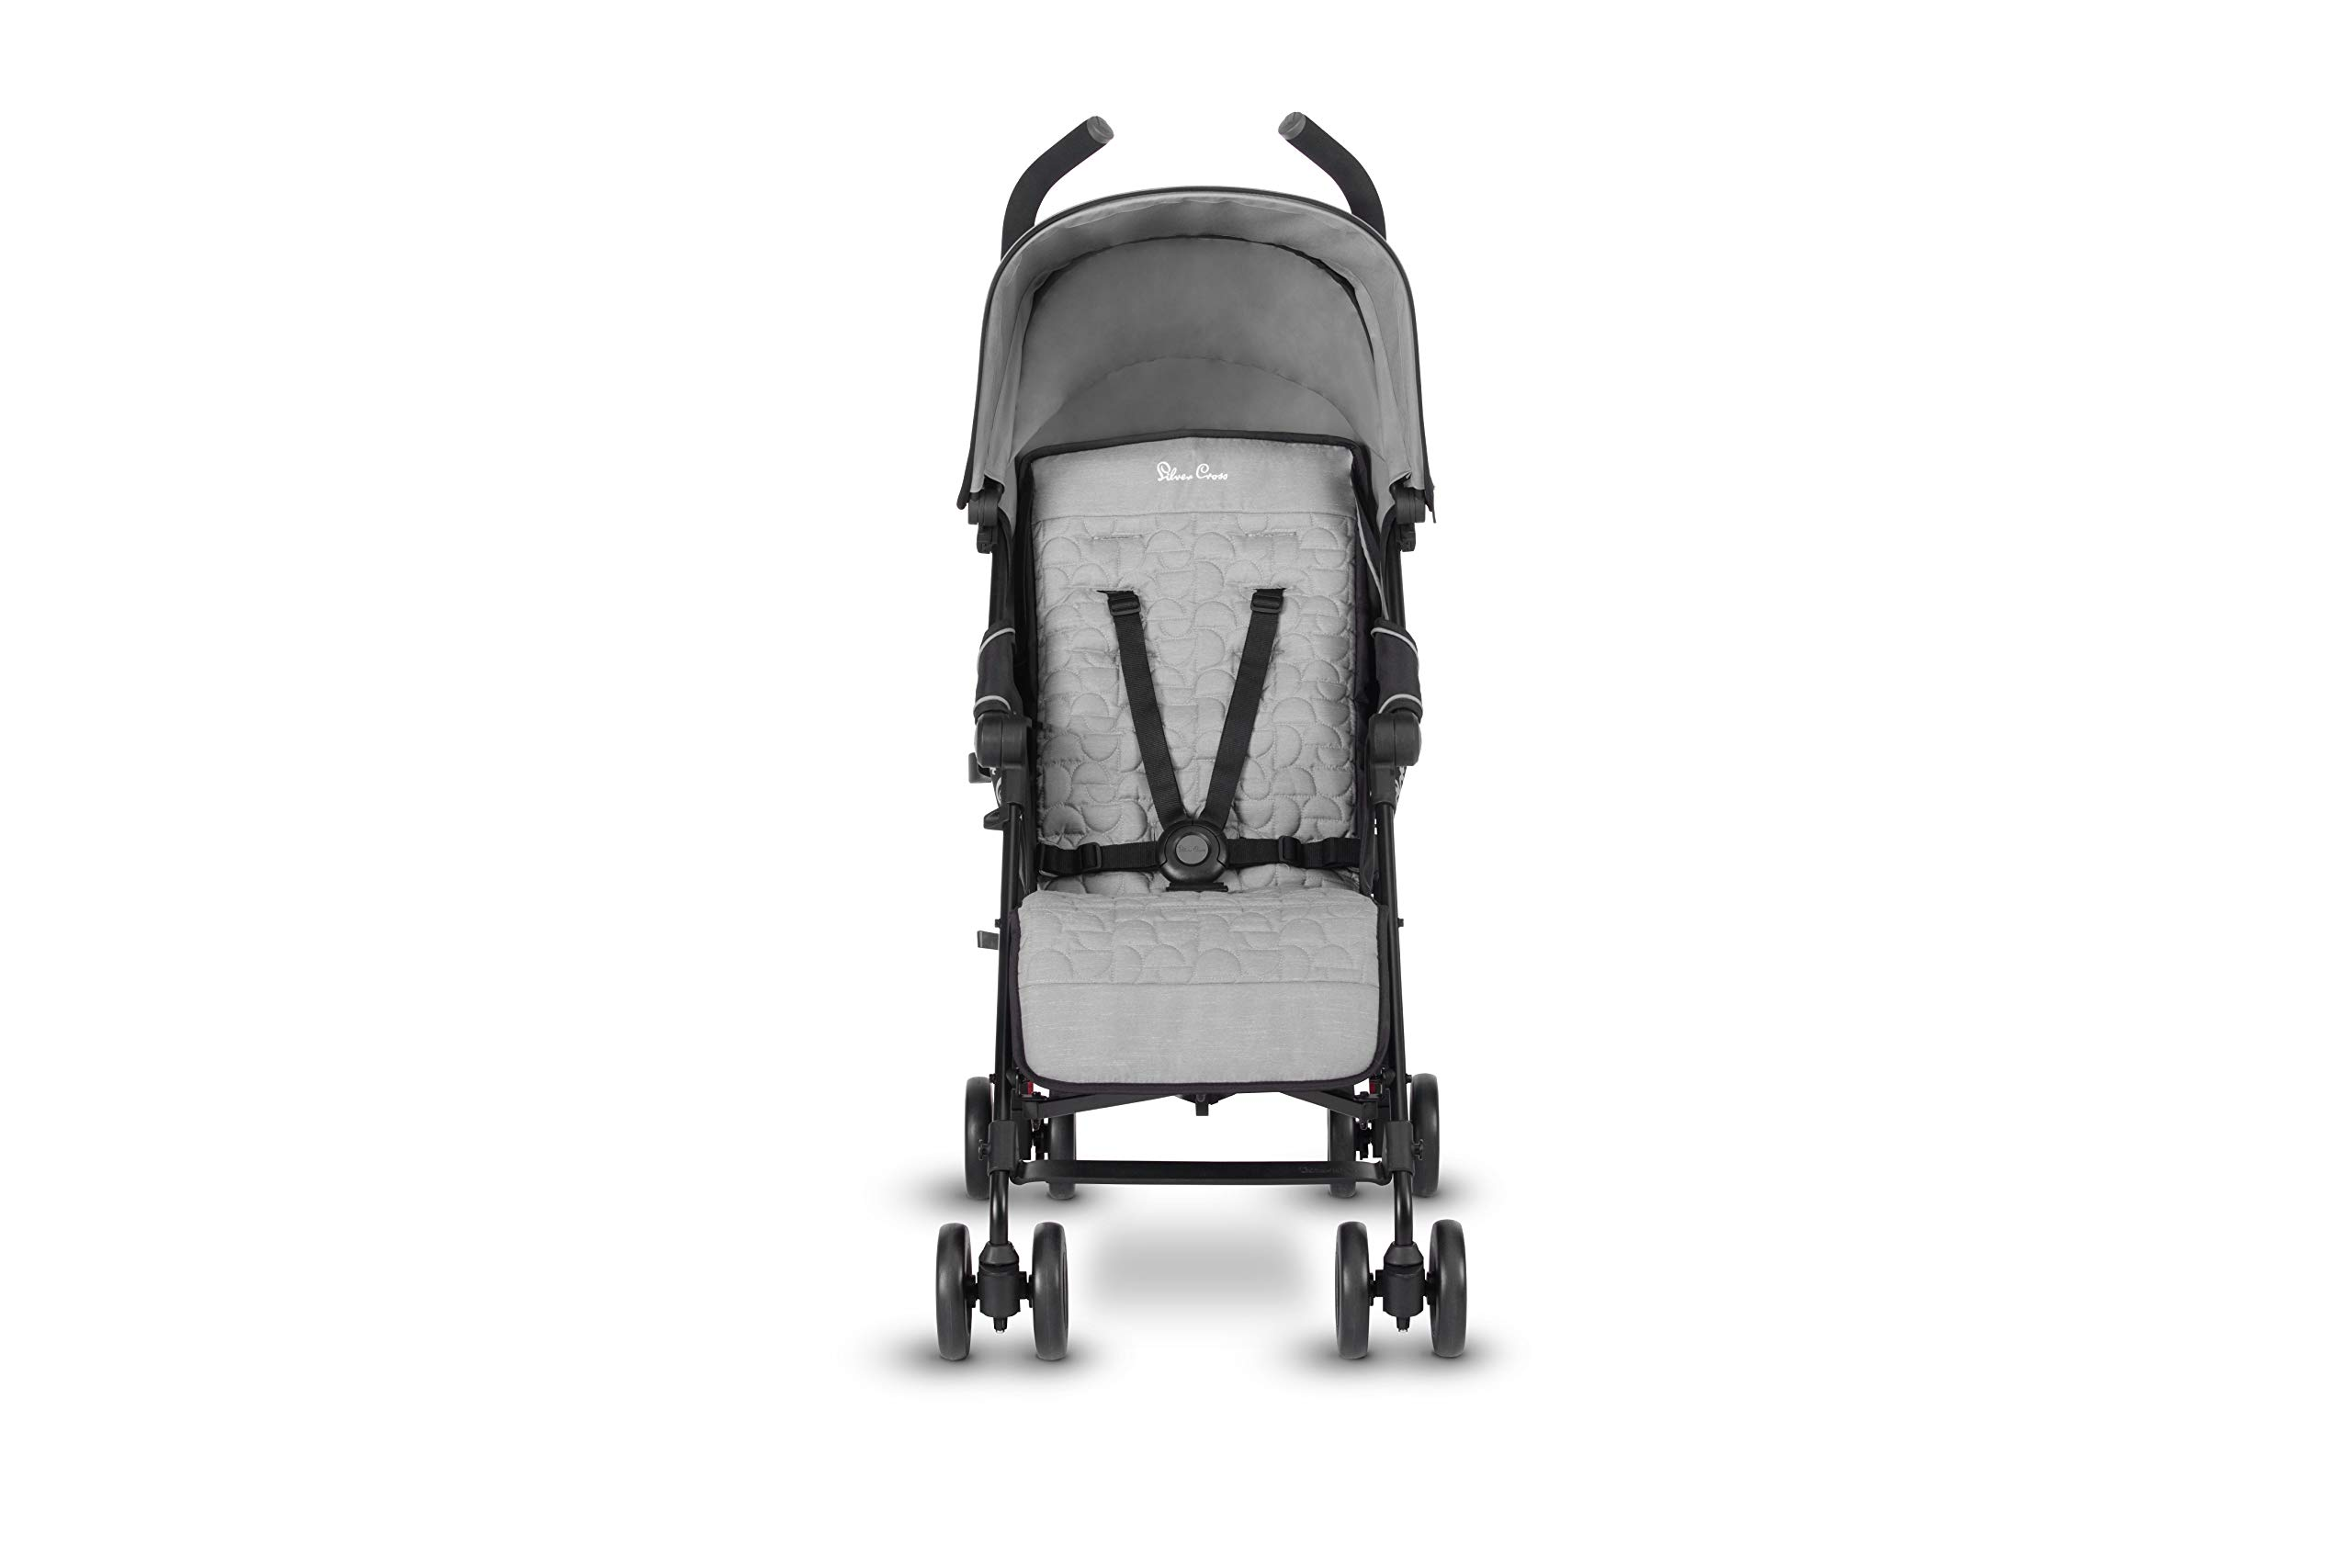 Silver Cross Zest Silver Silver Cross Ultra lightweight zest pushchair, weighing in at only 5.8kg, is suitable from birth up to 25kg It has a convenient one-hand fold, while the compact design makes it easy to store The fully lie-flat recline is best in its class 4